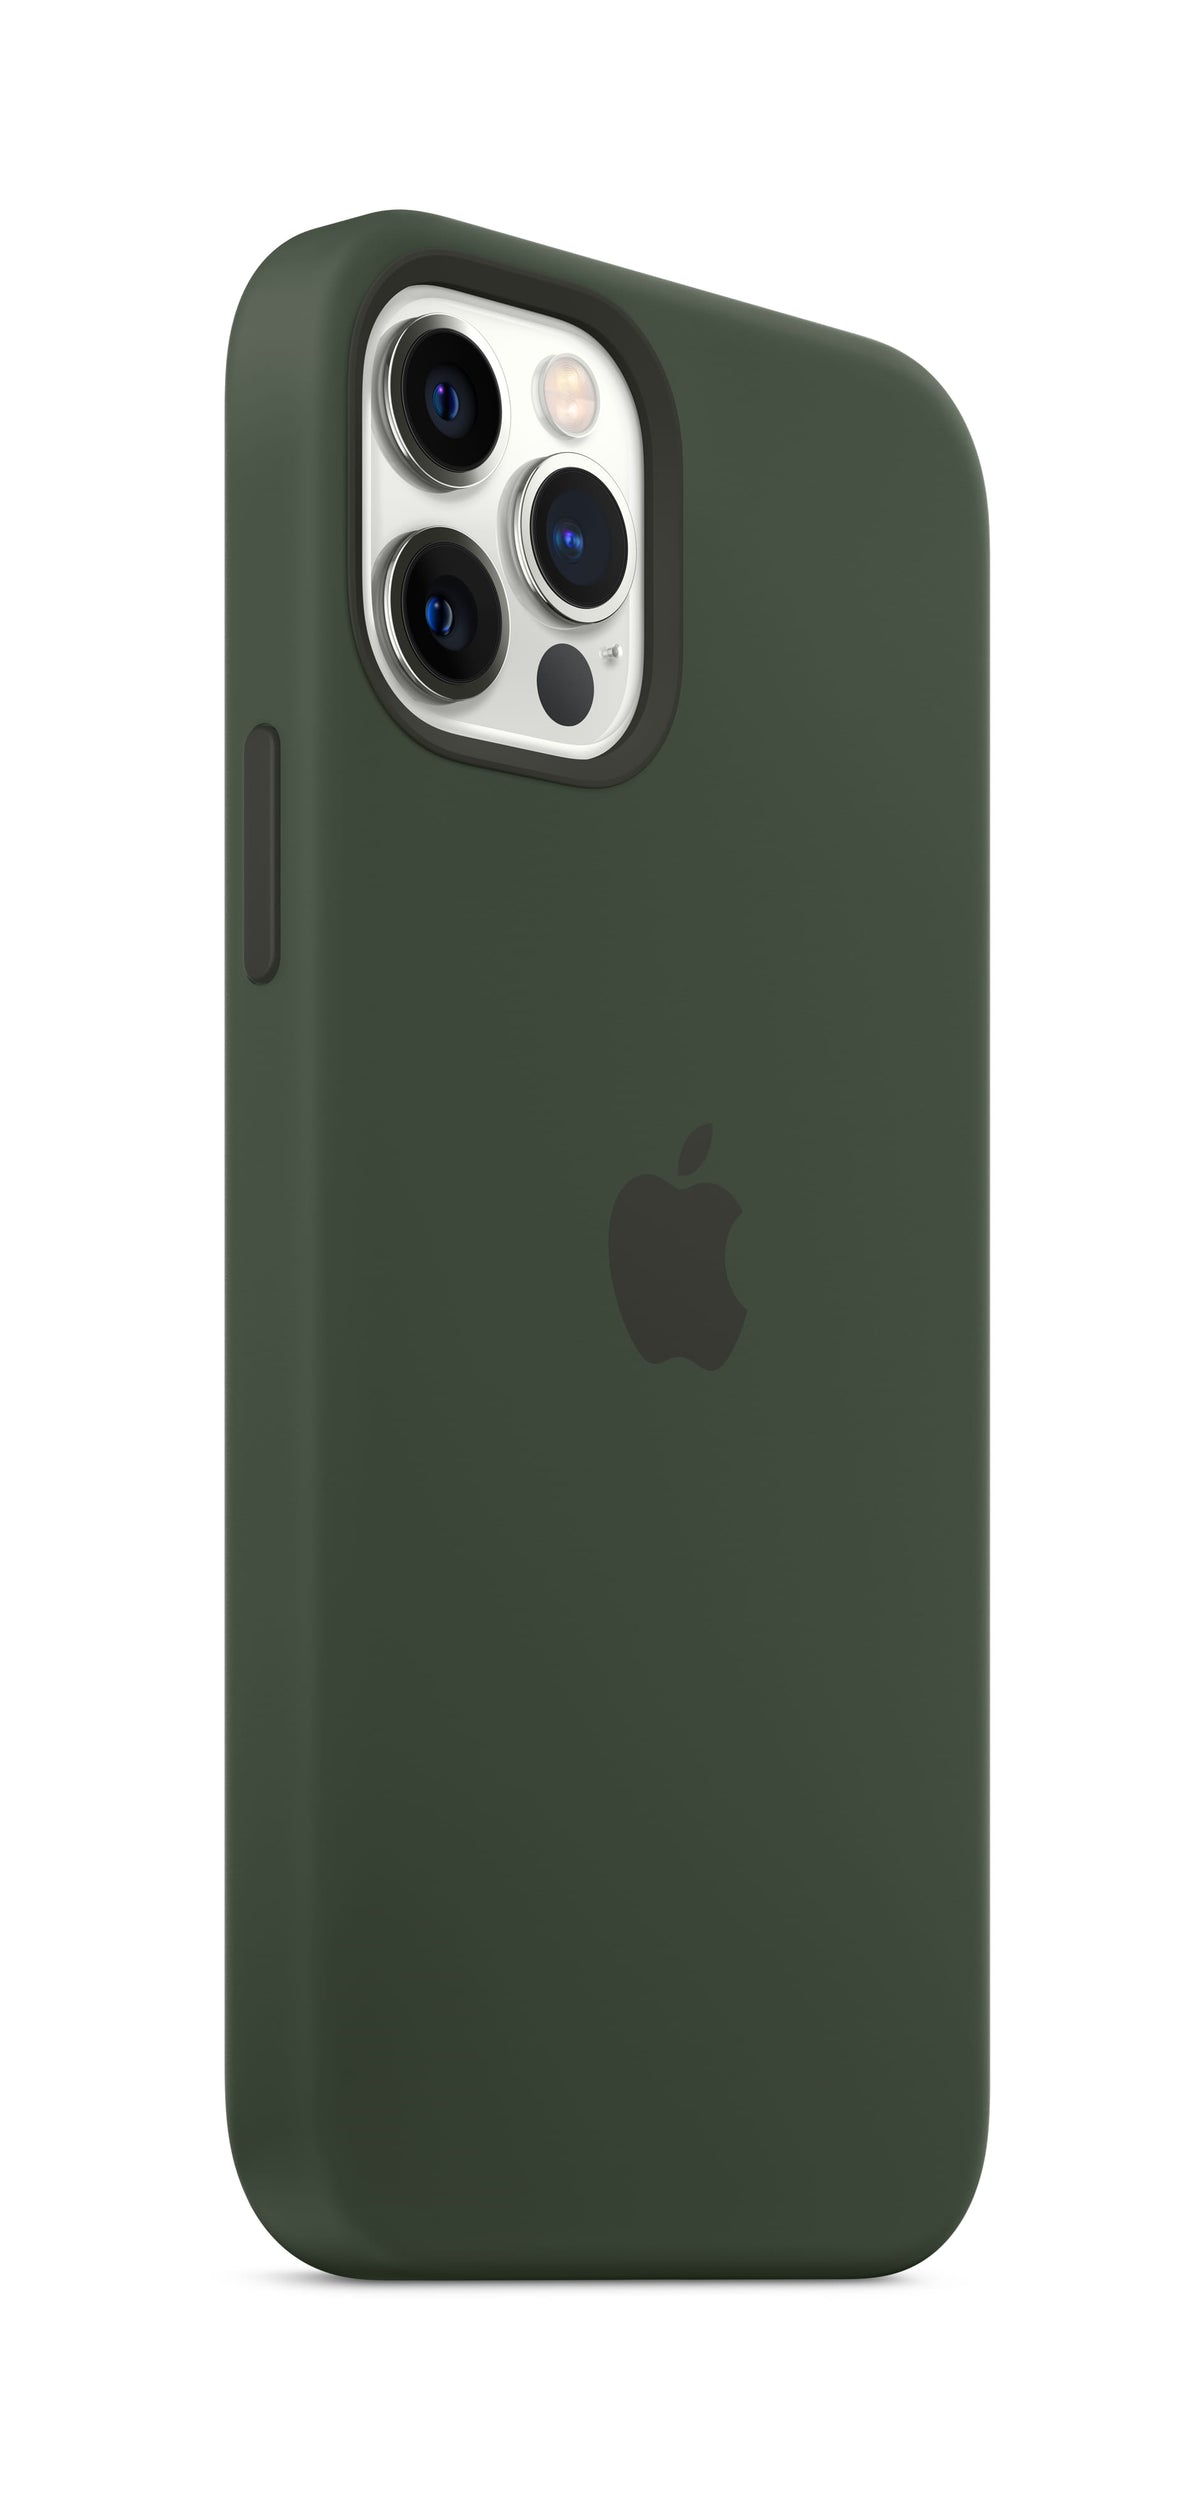 iPhone 12 | 12 Pro Silicone Case with MagSafe - Cyprus Green